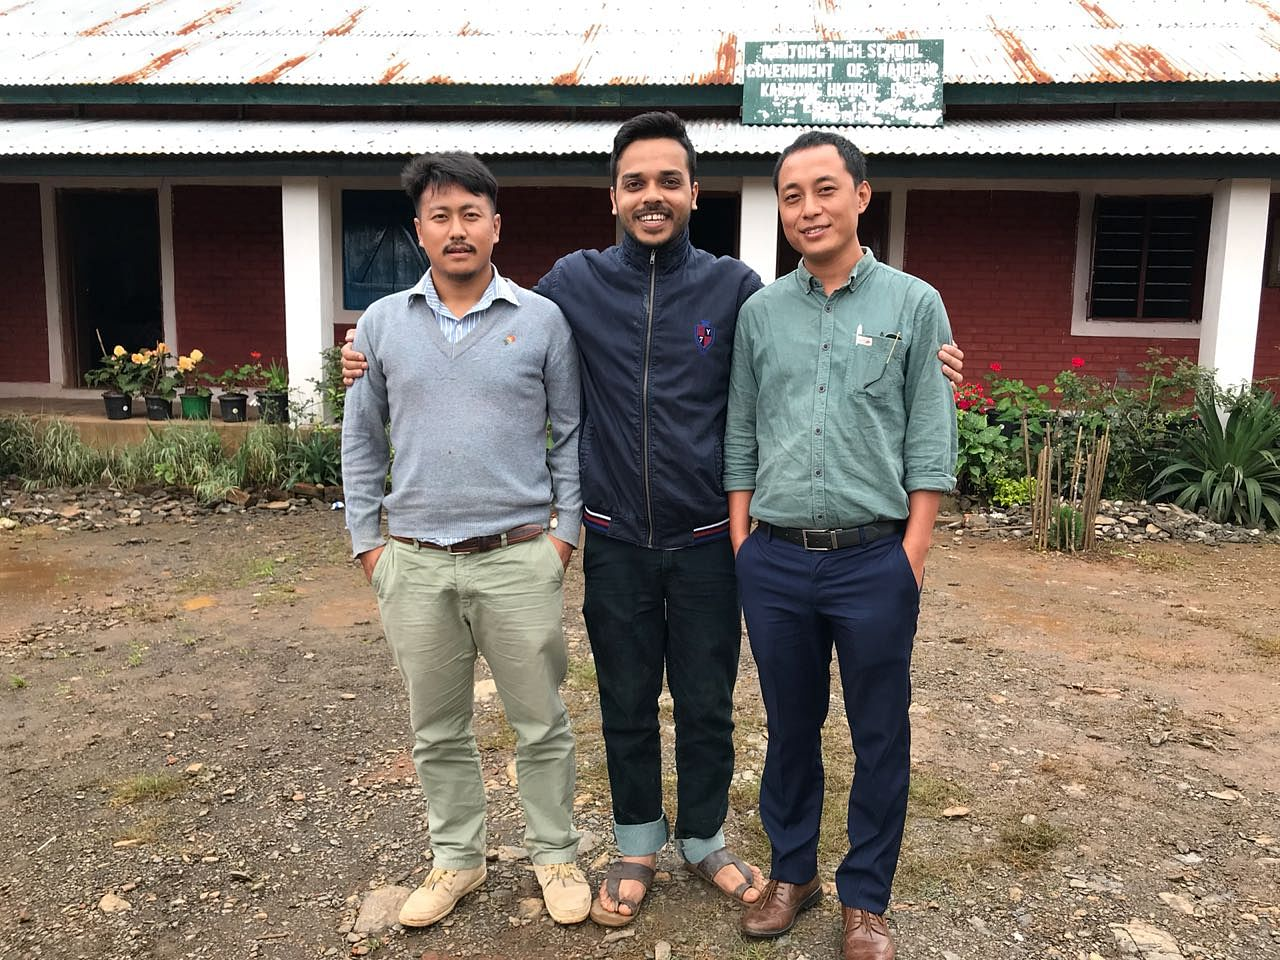 Mathanmi Hungyo, Director of RREA (Extreme Left) with Raghwendra Singh (middle).